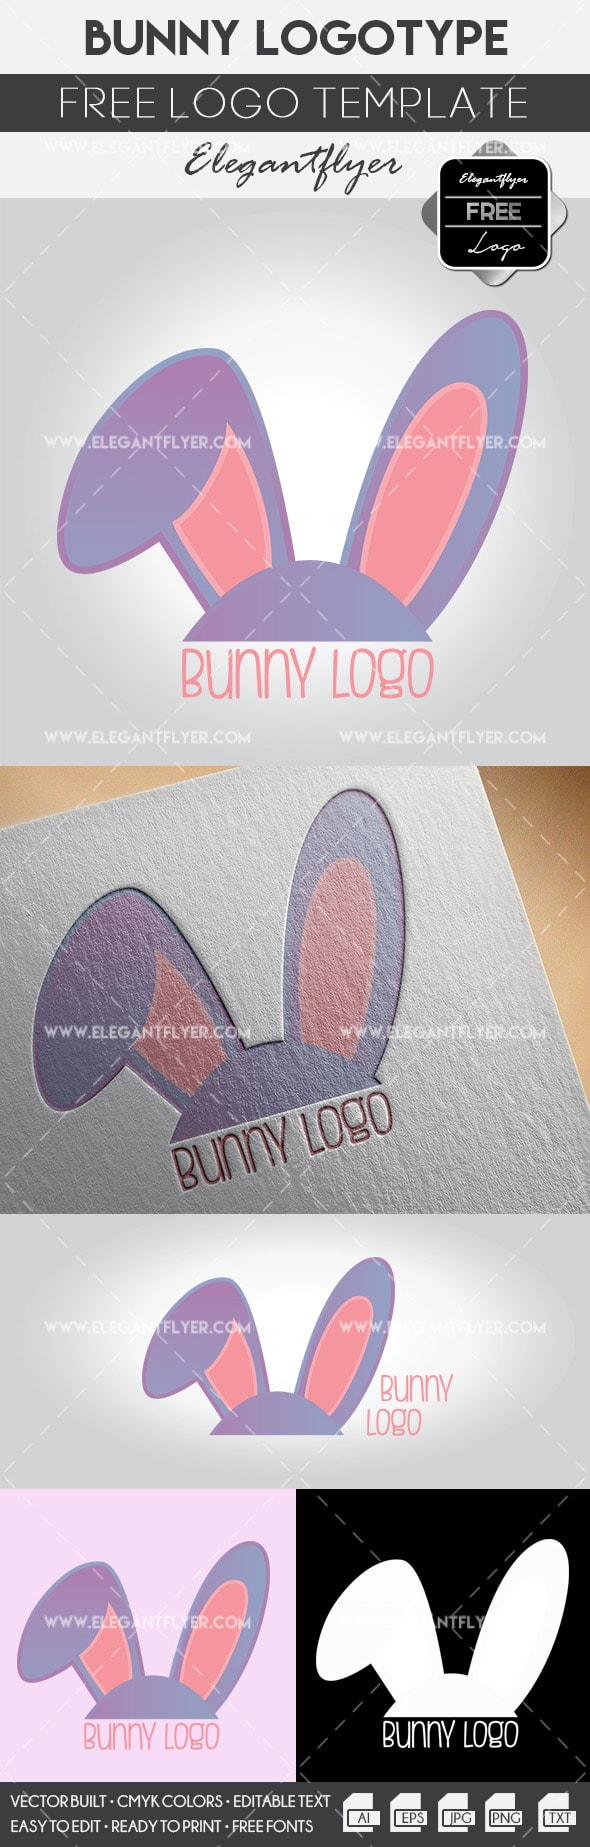 Bunny – Free Logo Template